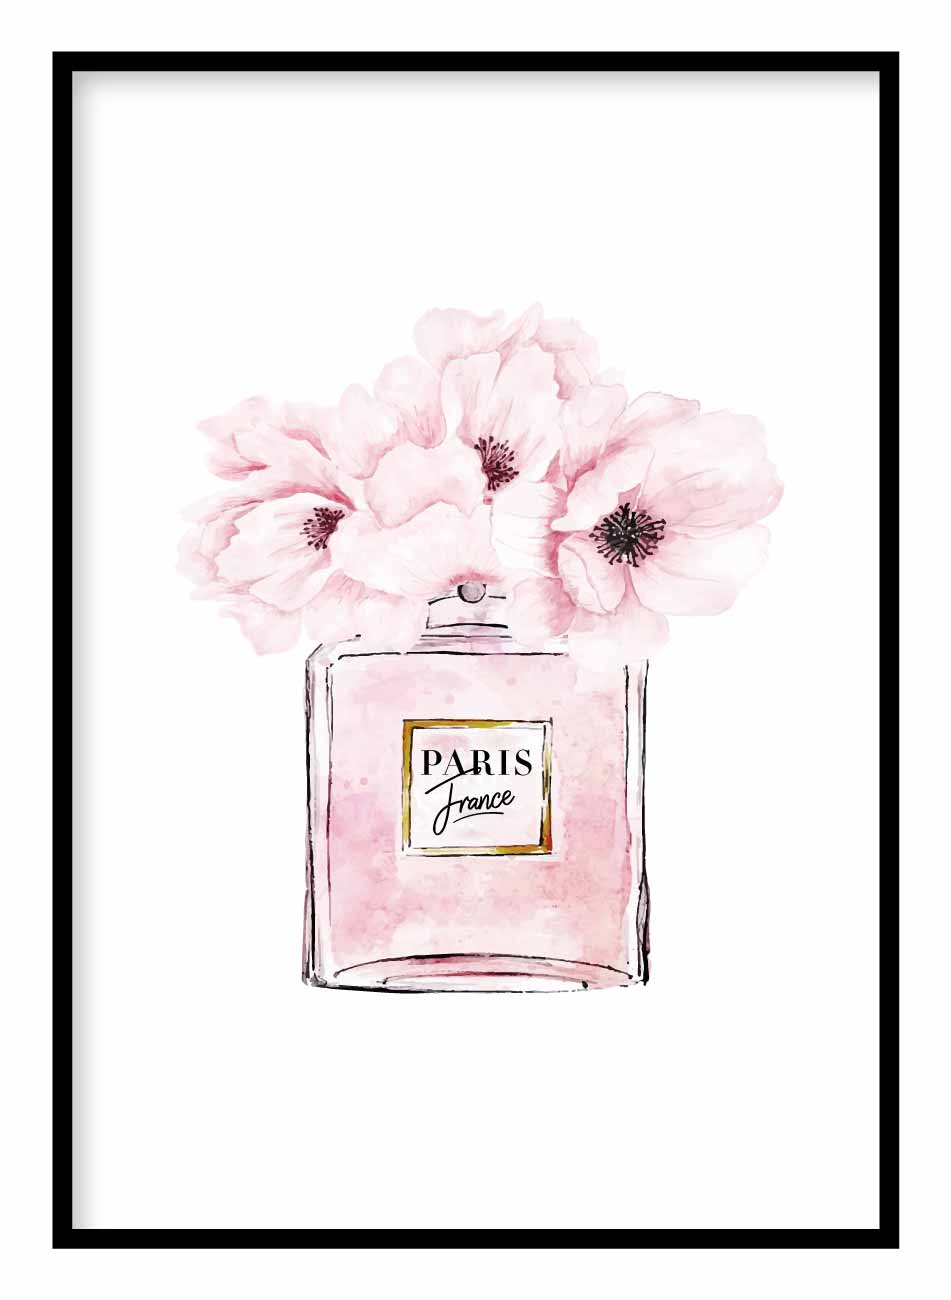 Flowers Perfume Coco Chanel Poster Hidden Prints